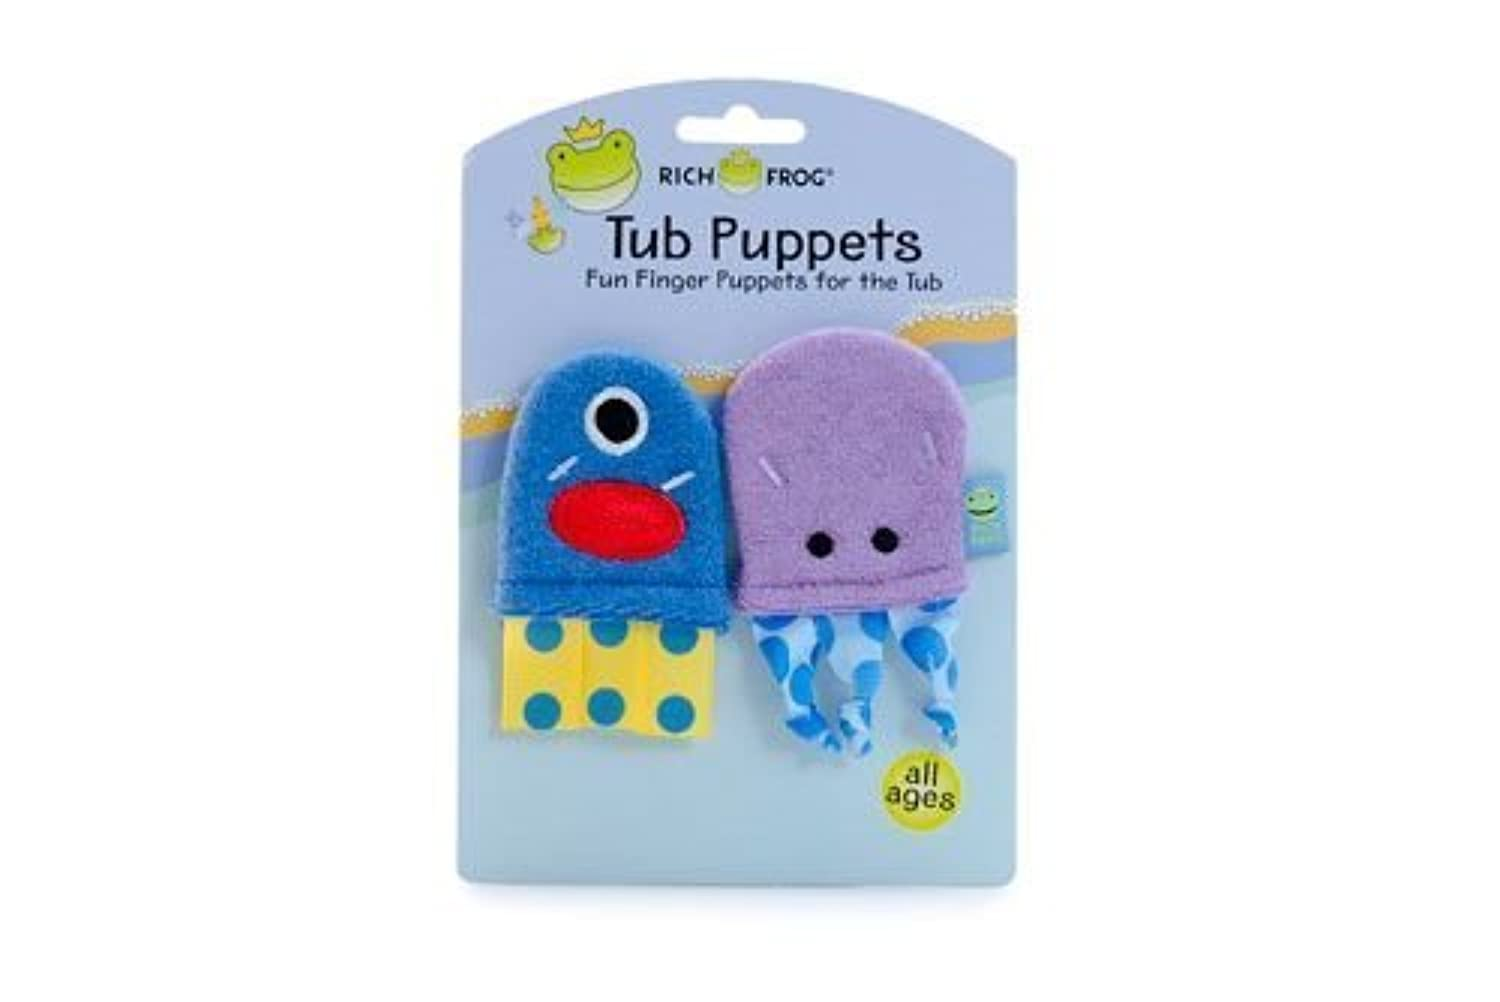 Rich Frog Sea Monsters Tub Puppets by Rich Frog